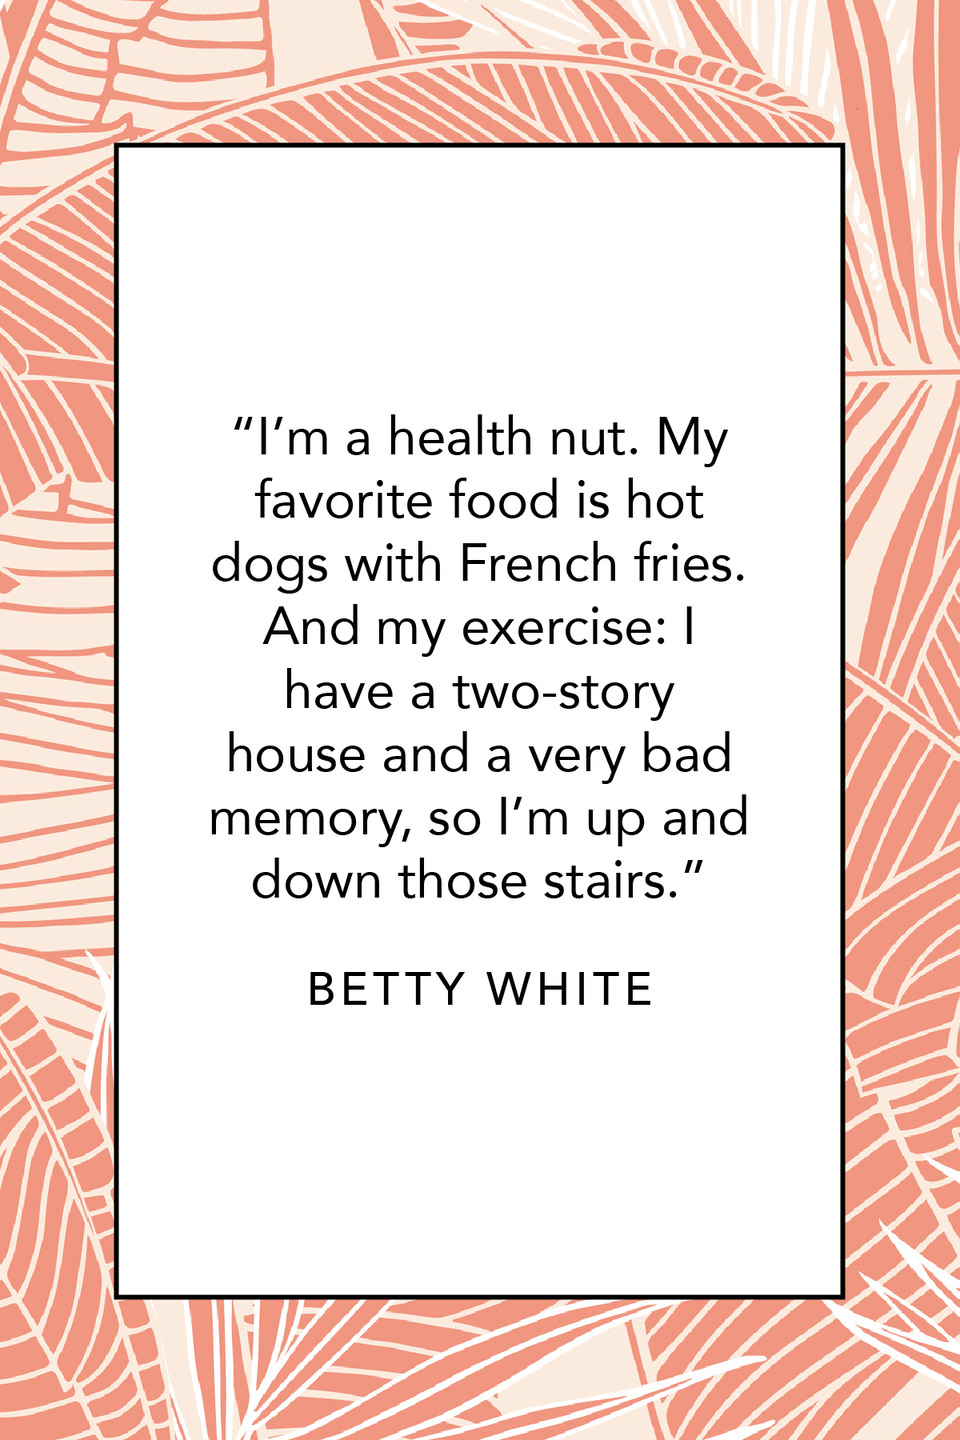 """<p>""""I'm a health nut. My favorite food is hot dogs with French fries. And my exercise: I have a two-story house and a very bad memory, so I'm up and down those stairs,"""" Betty White joked in a<a href=""""https://www.youtube.com/watch?v=3LNjmo4Cbaw"""" rel=""""nofollow noopener"""" target=""""_blank"""" data-ylk=""""slk:TimesTalks event"""" class=""""link rapid-noclick-resp""""> TimesTalks event </a>in 2012.</p>"""